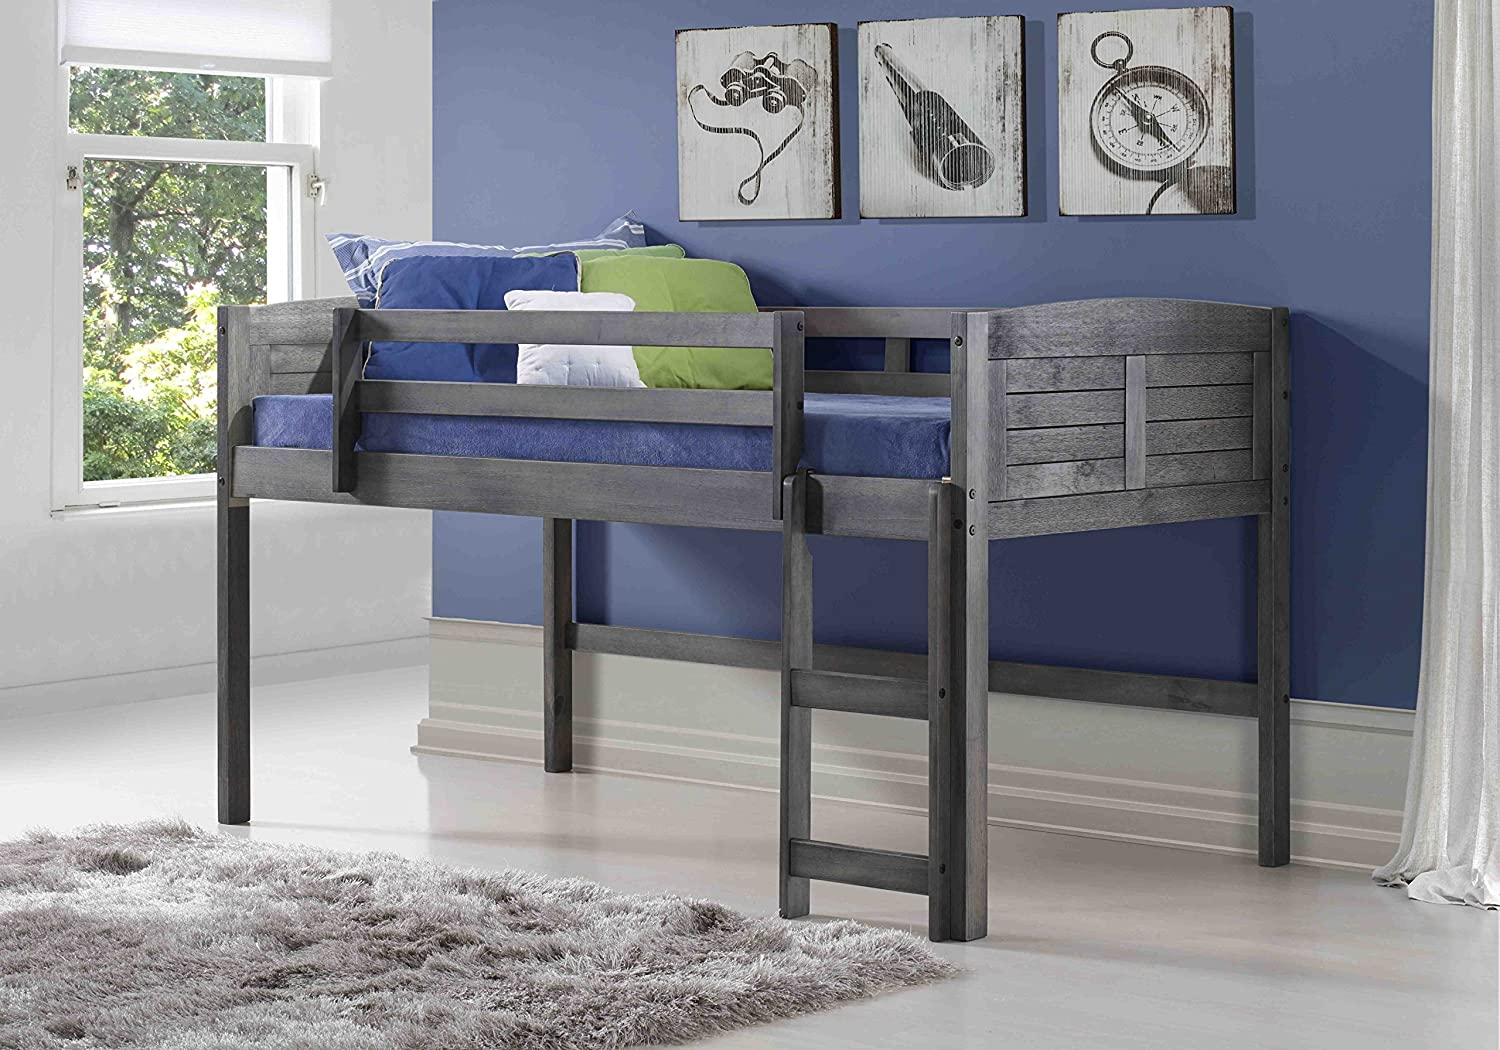 DONCO KIDS 790AAG Louver Modular Low Loft Bed Combo A, Twin, Antique Grey